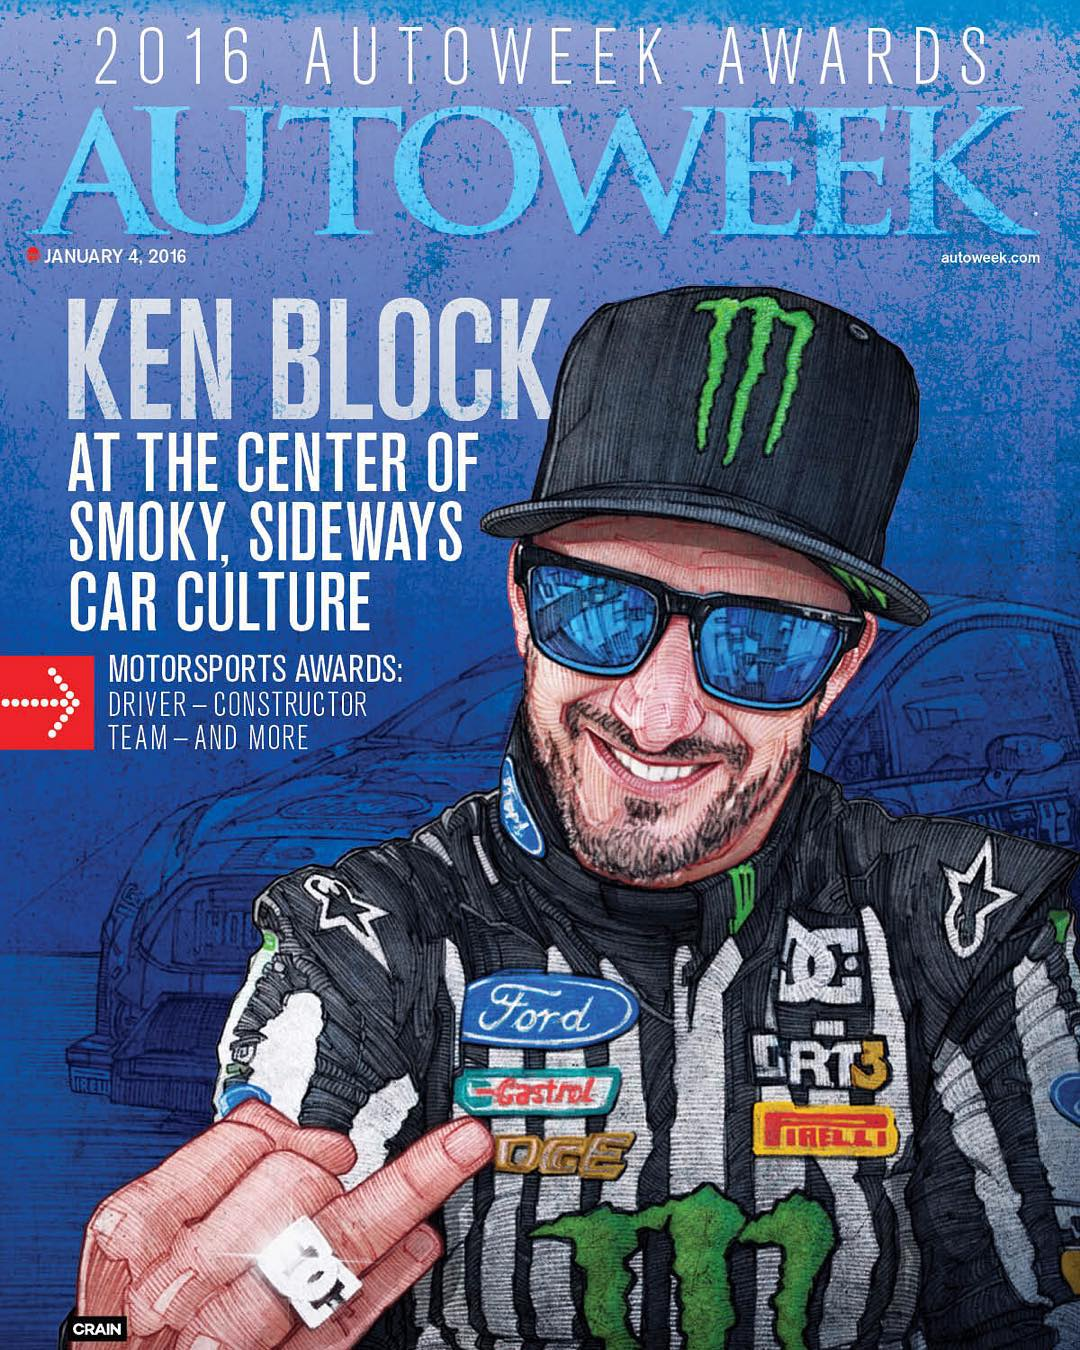 "@AutoweekUSA just launched the inaugural ""Autoweek Awards"" today, and they gave me the 2016 Autoweek Car Culture Award!! Thanks AW, that's an honor to me. I'm just out here trying to have as much fun with cars as possible! Hit the link in my profile..."